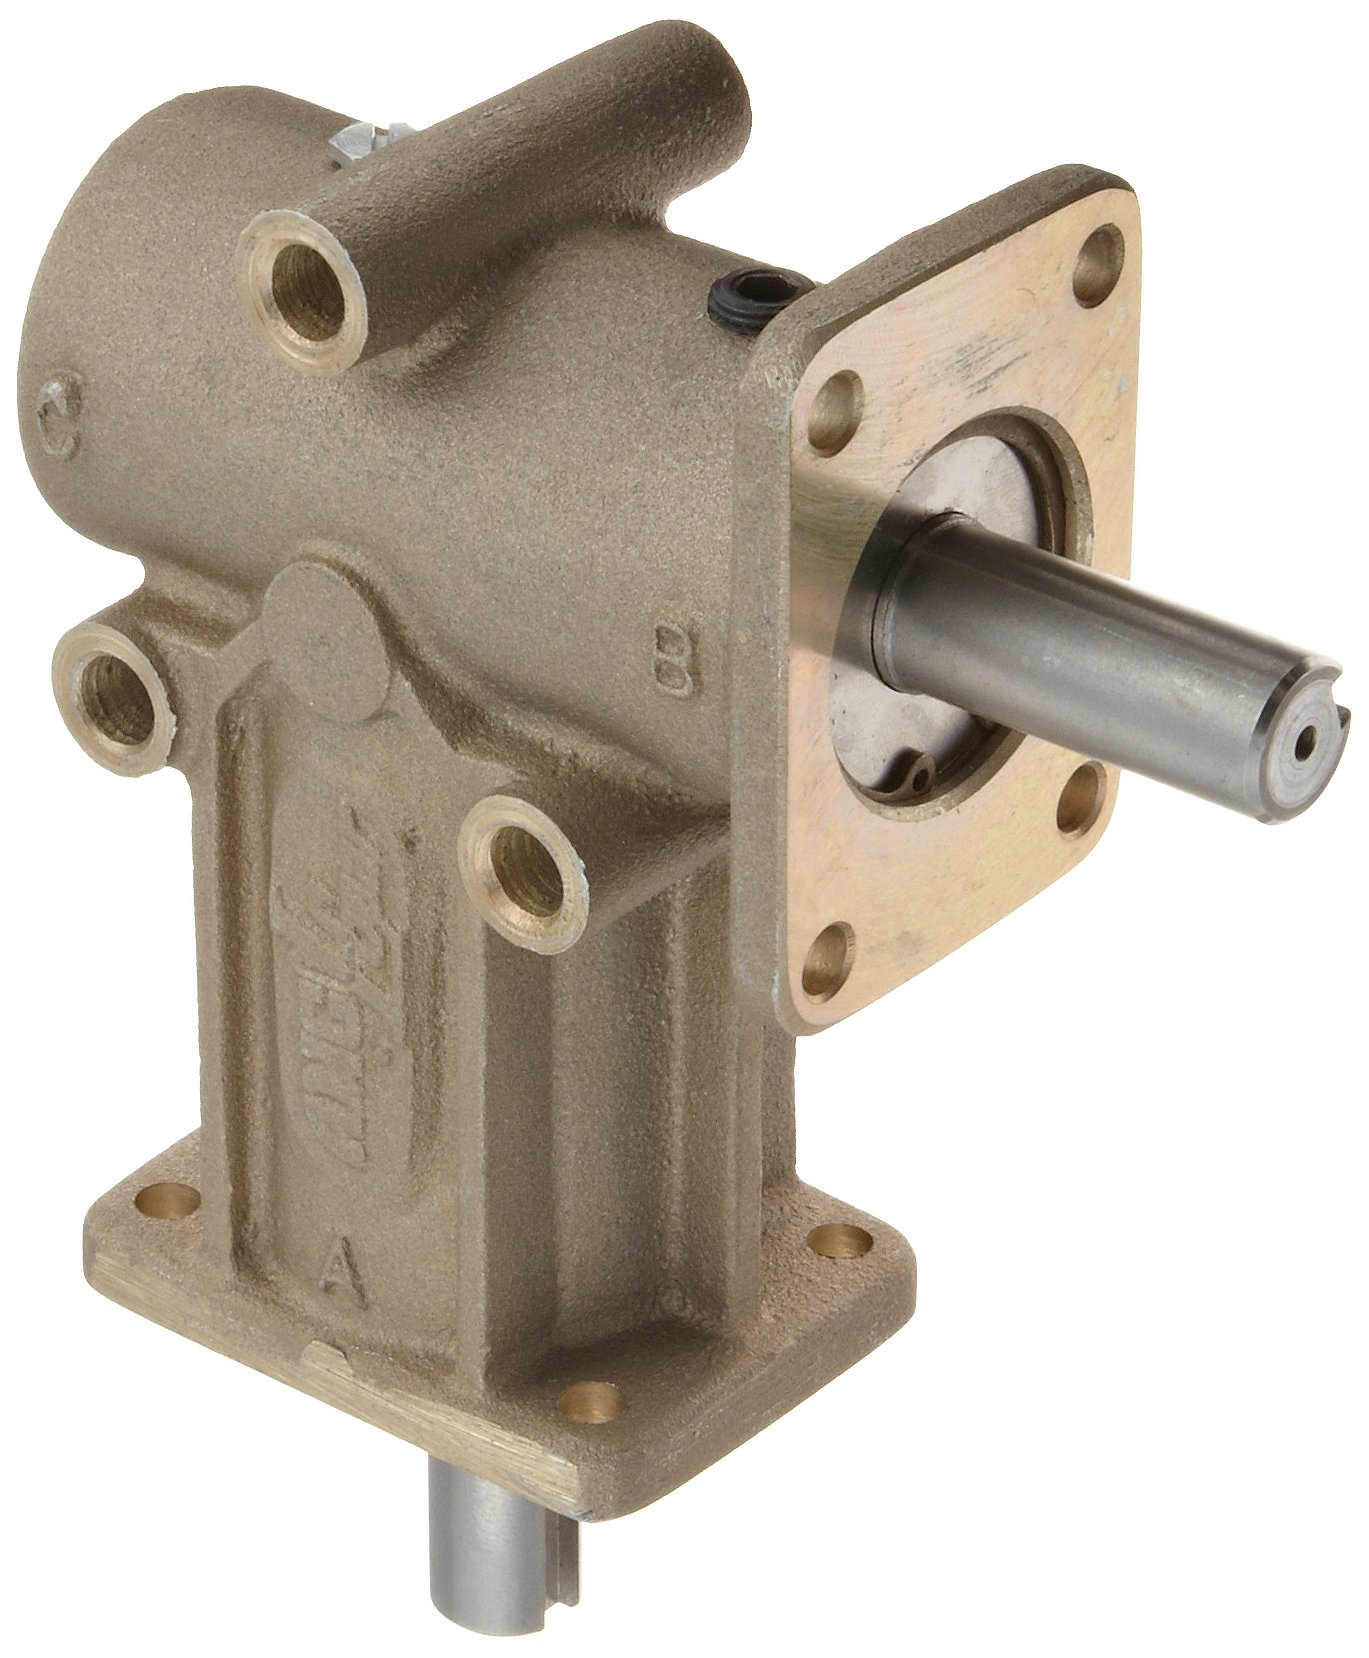 Andantex R3200M Anglgear Right Angle Bevel Gear Drive, Universal Mounting, Single Output Shaft, 2 Flanges, Metric, 15mm Shaft Diameter, 1:1 Ratio, 1.47kW at 1750rpm by Andantex